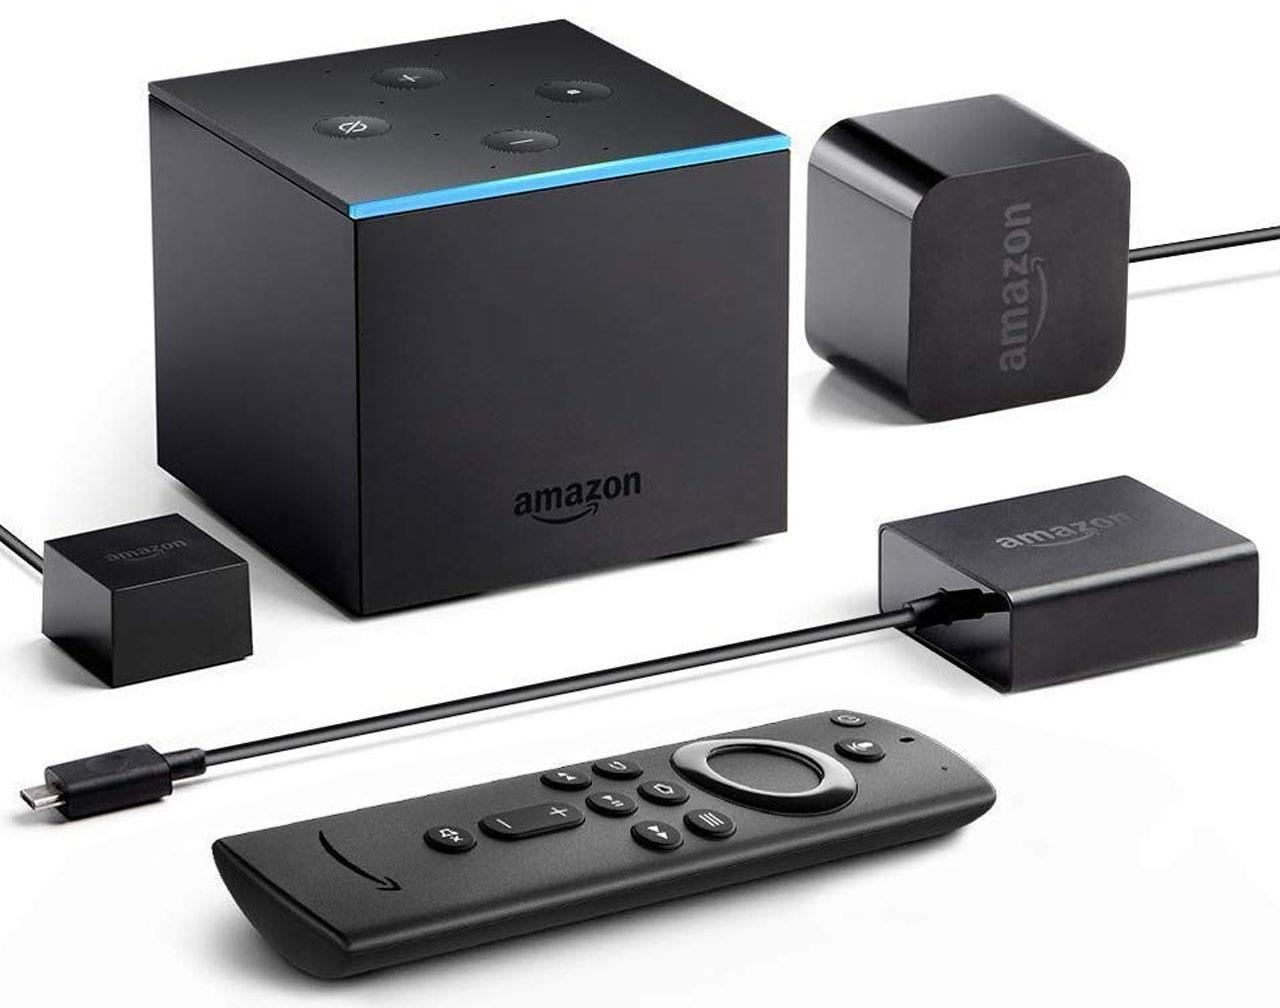 The Best Streaming Media Devices to Watch Your Favorite TV Shows & Movies